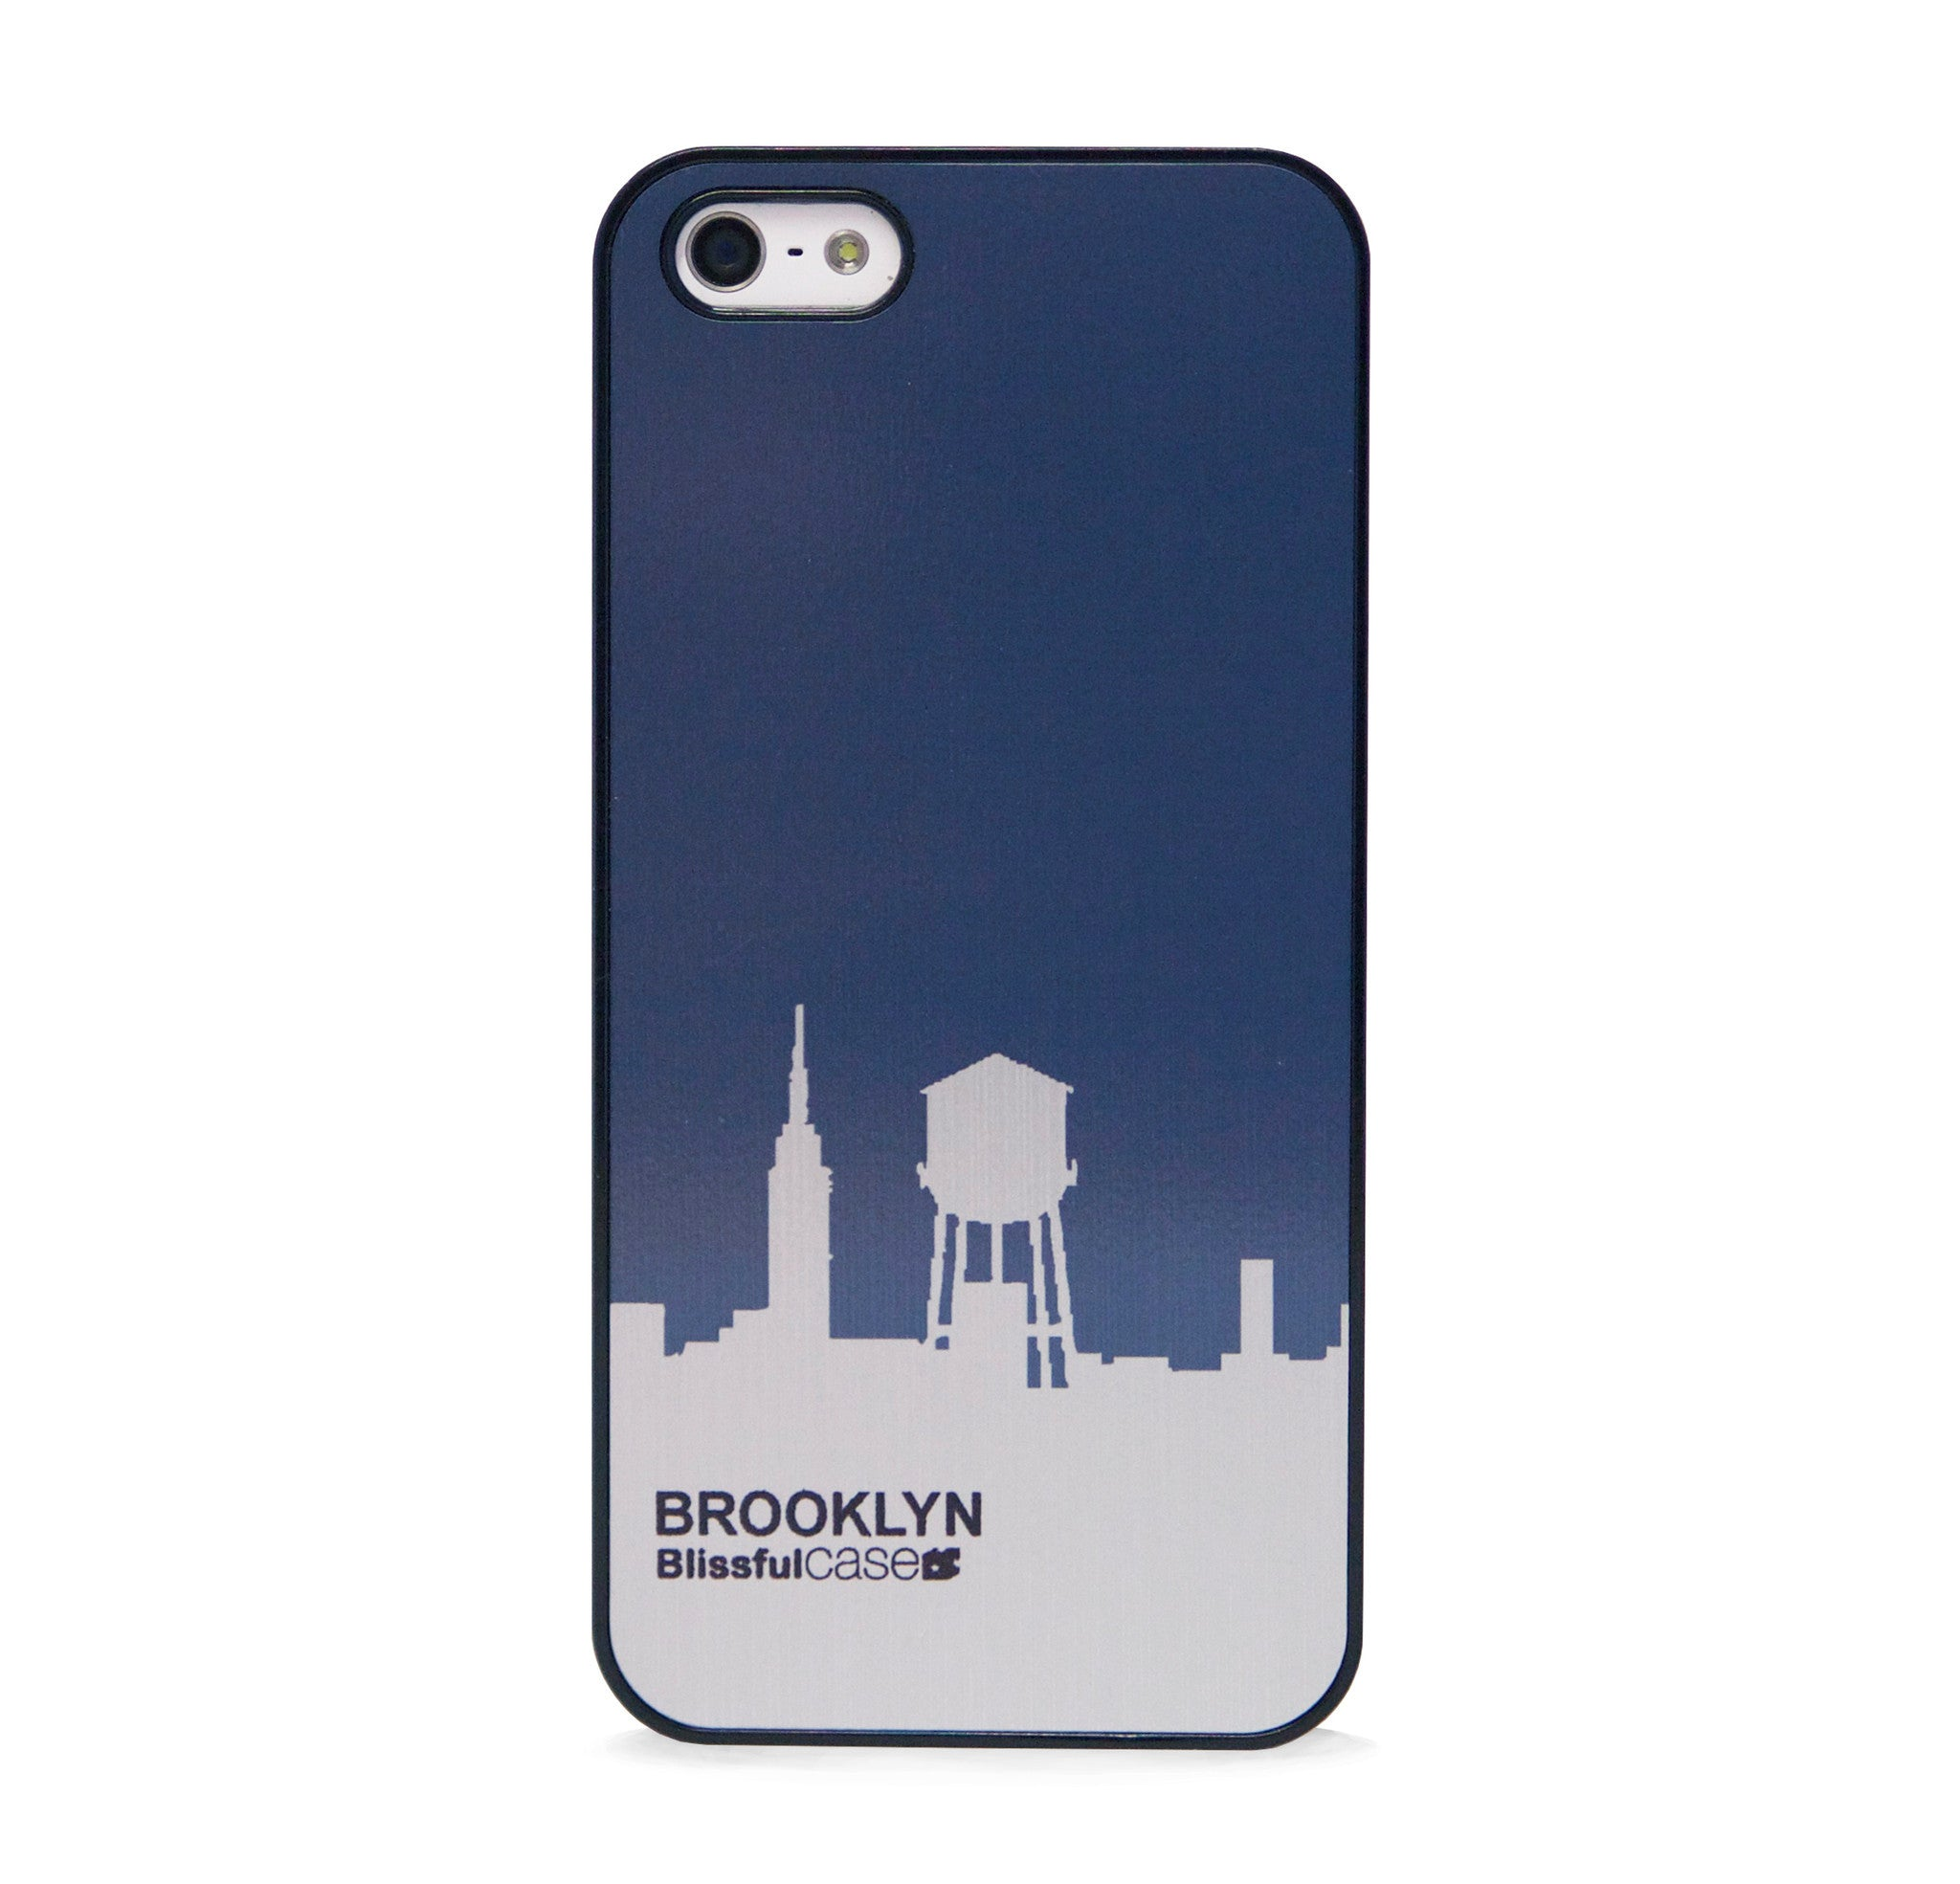 BROOKLYN GREY FOR IPHONE 5/5S, IPHONE SE